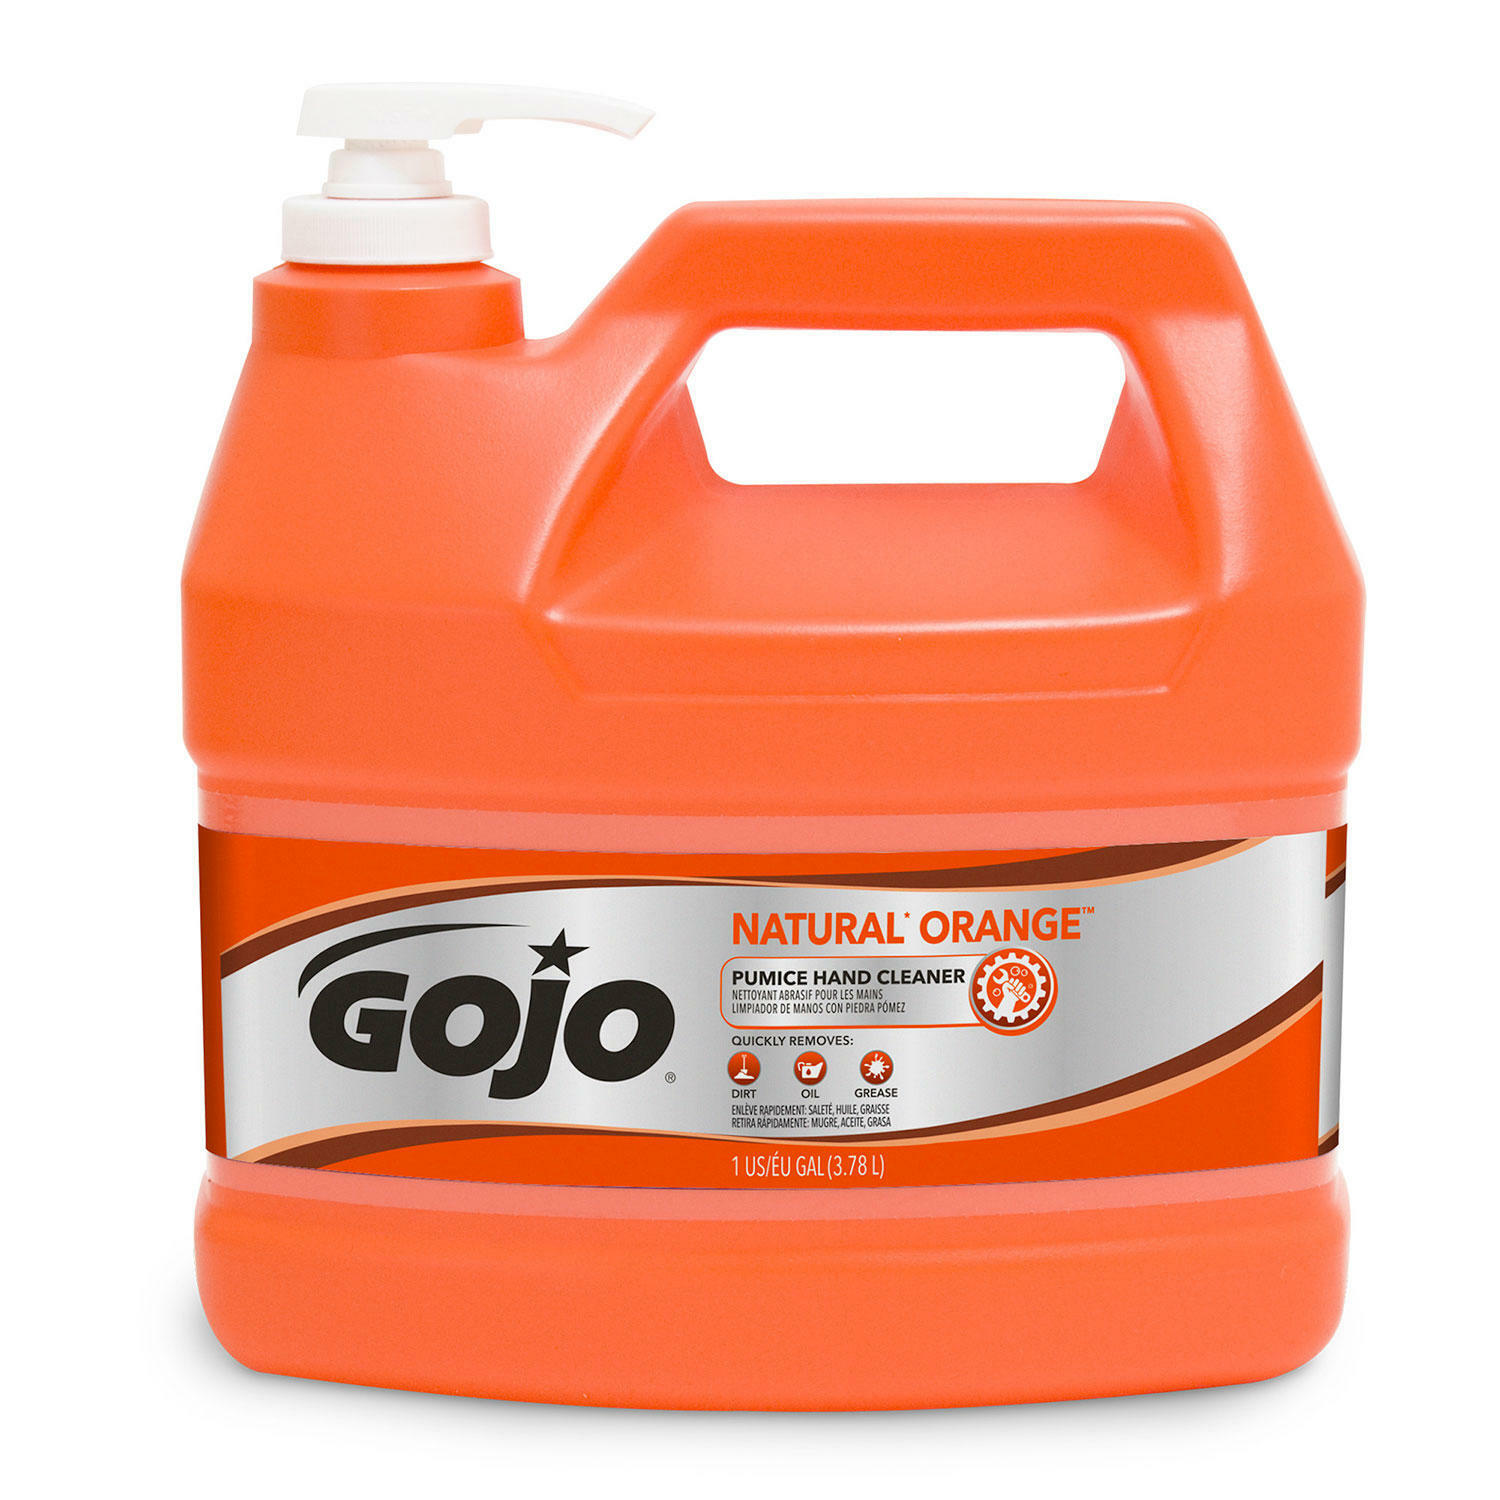 GOJO NATURAL ORANGE Pumice Industrial Hand Cleaner, 1 Gallon